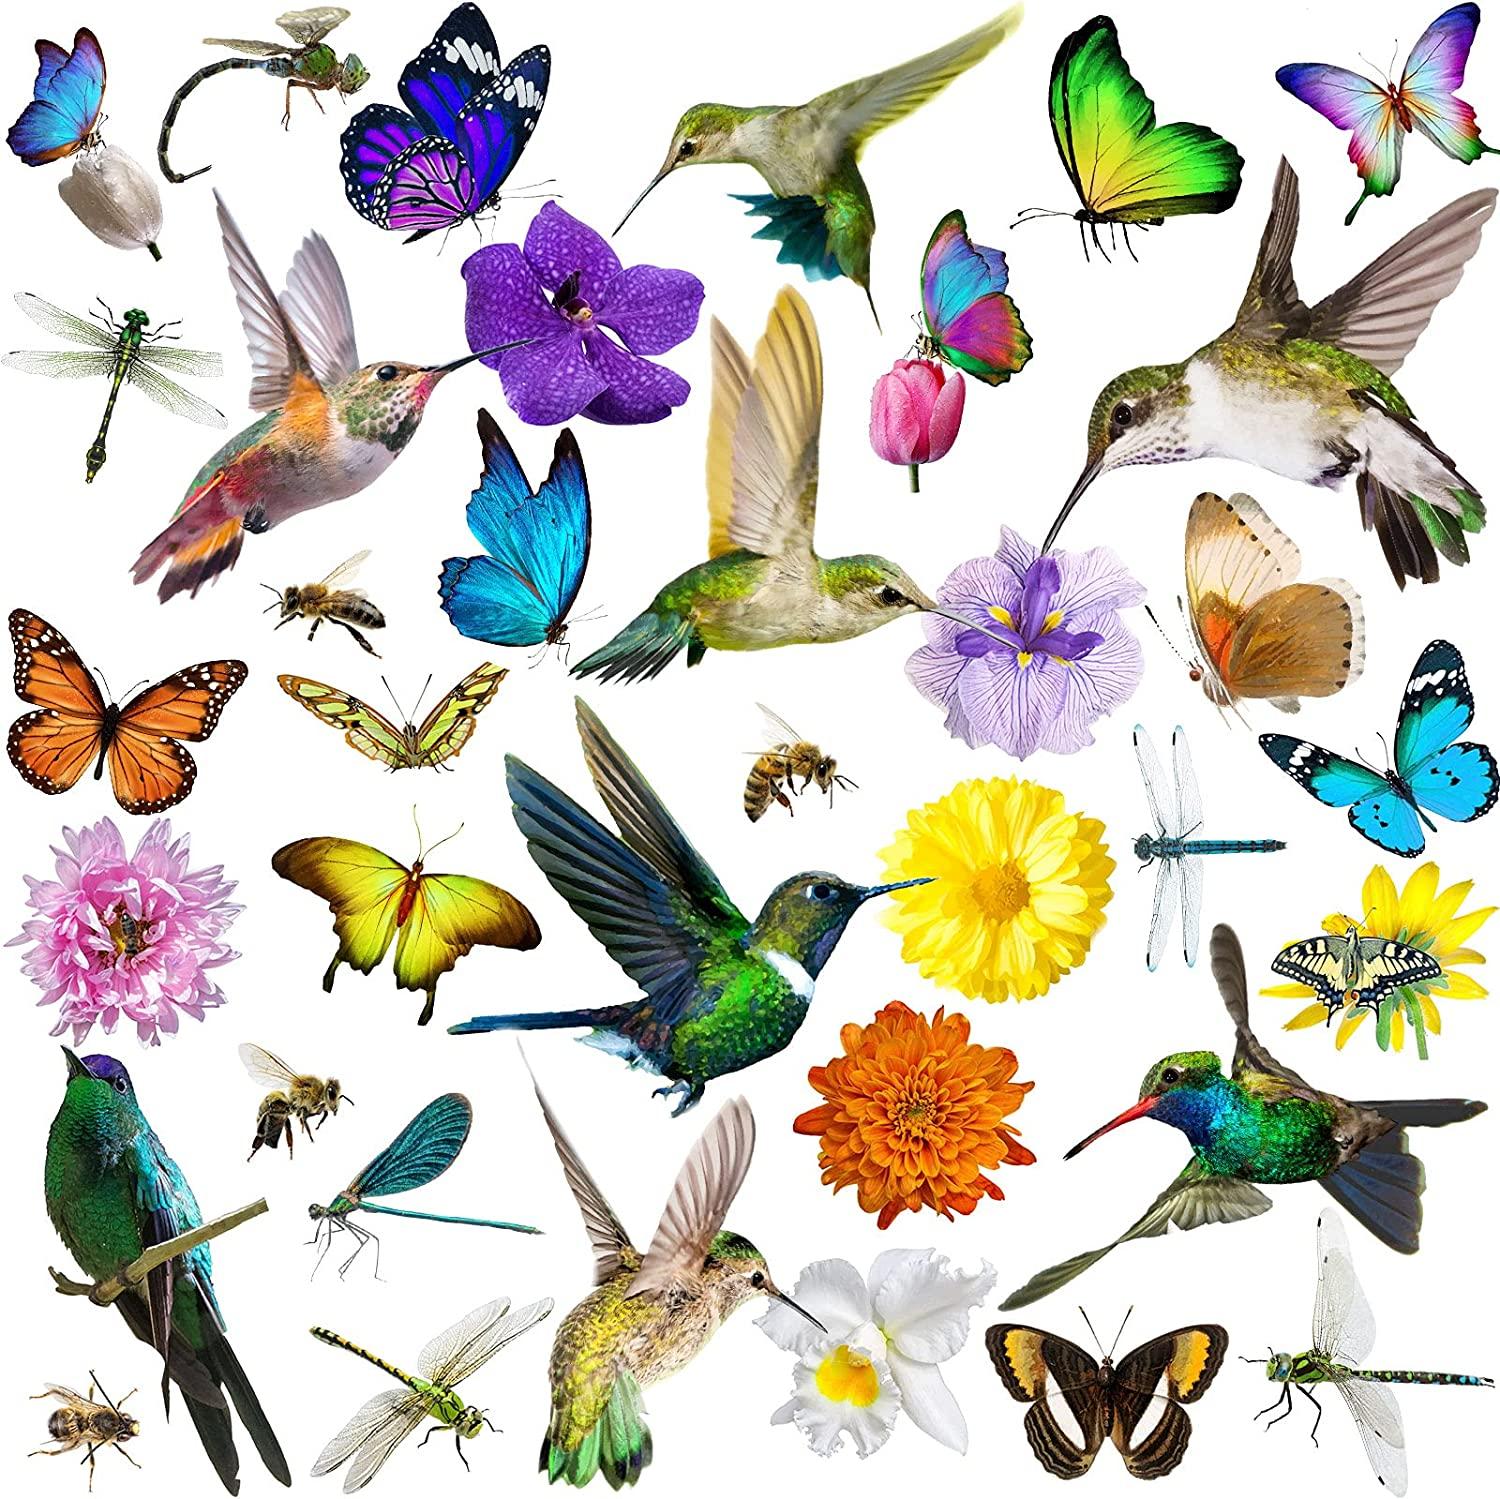 40 Pieces Hummingbird Butterfly Ranking TOP17 Flower Window Static Clings Bird Inexpensive